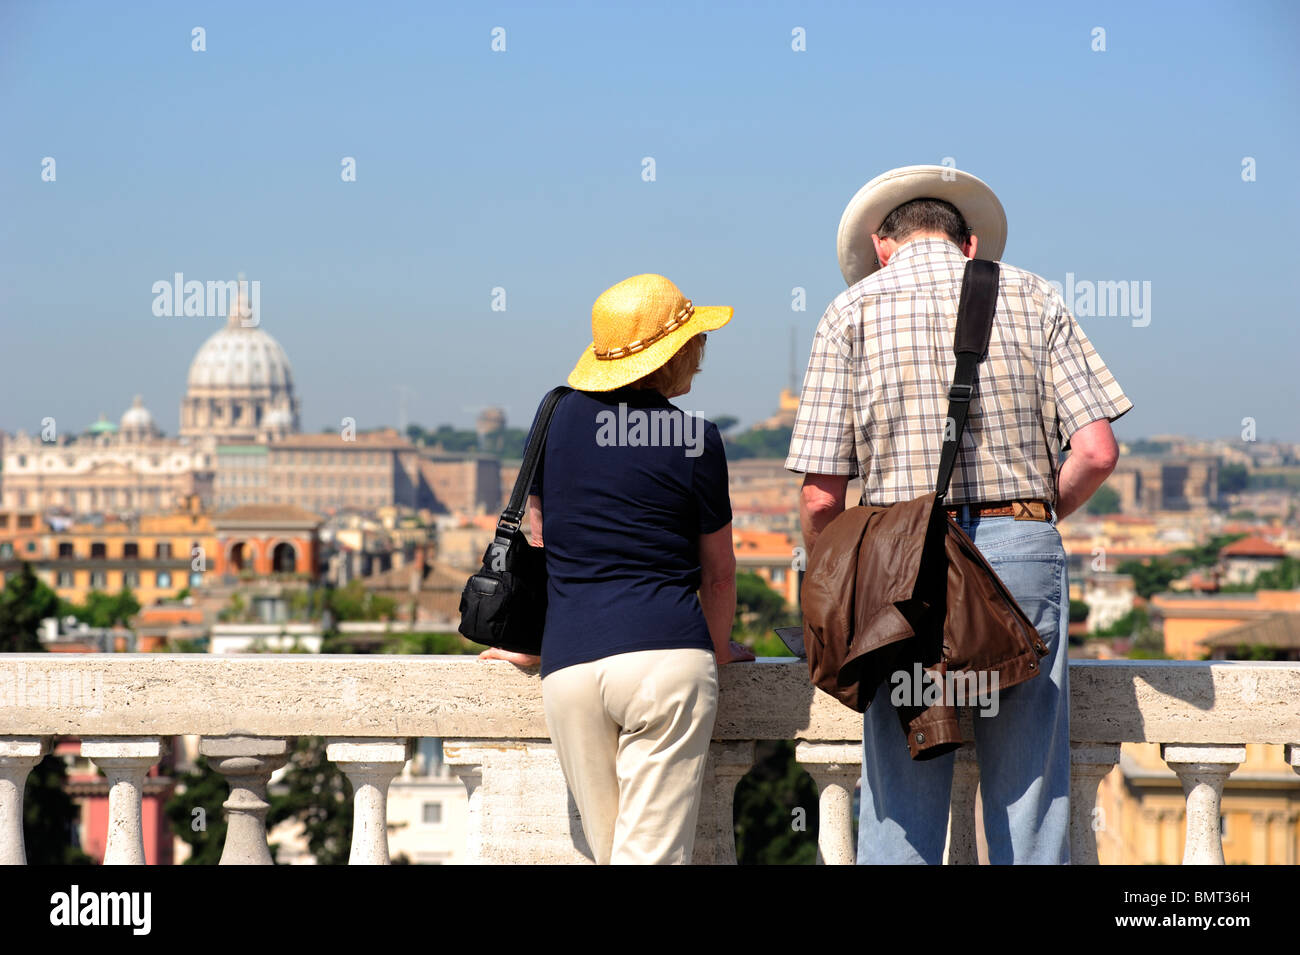 italy, rome, pincio hill, viewpoint overlooking piazza del popolo, tourists - Stock Image